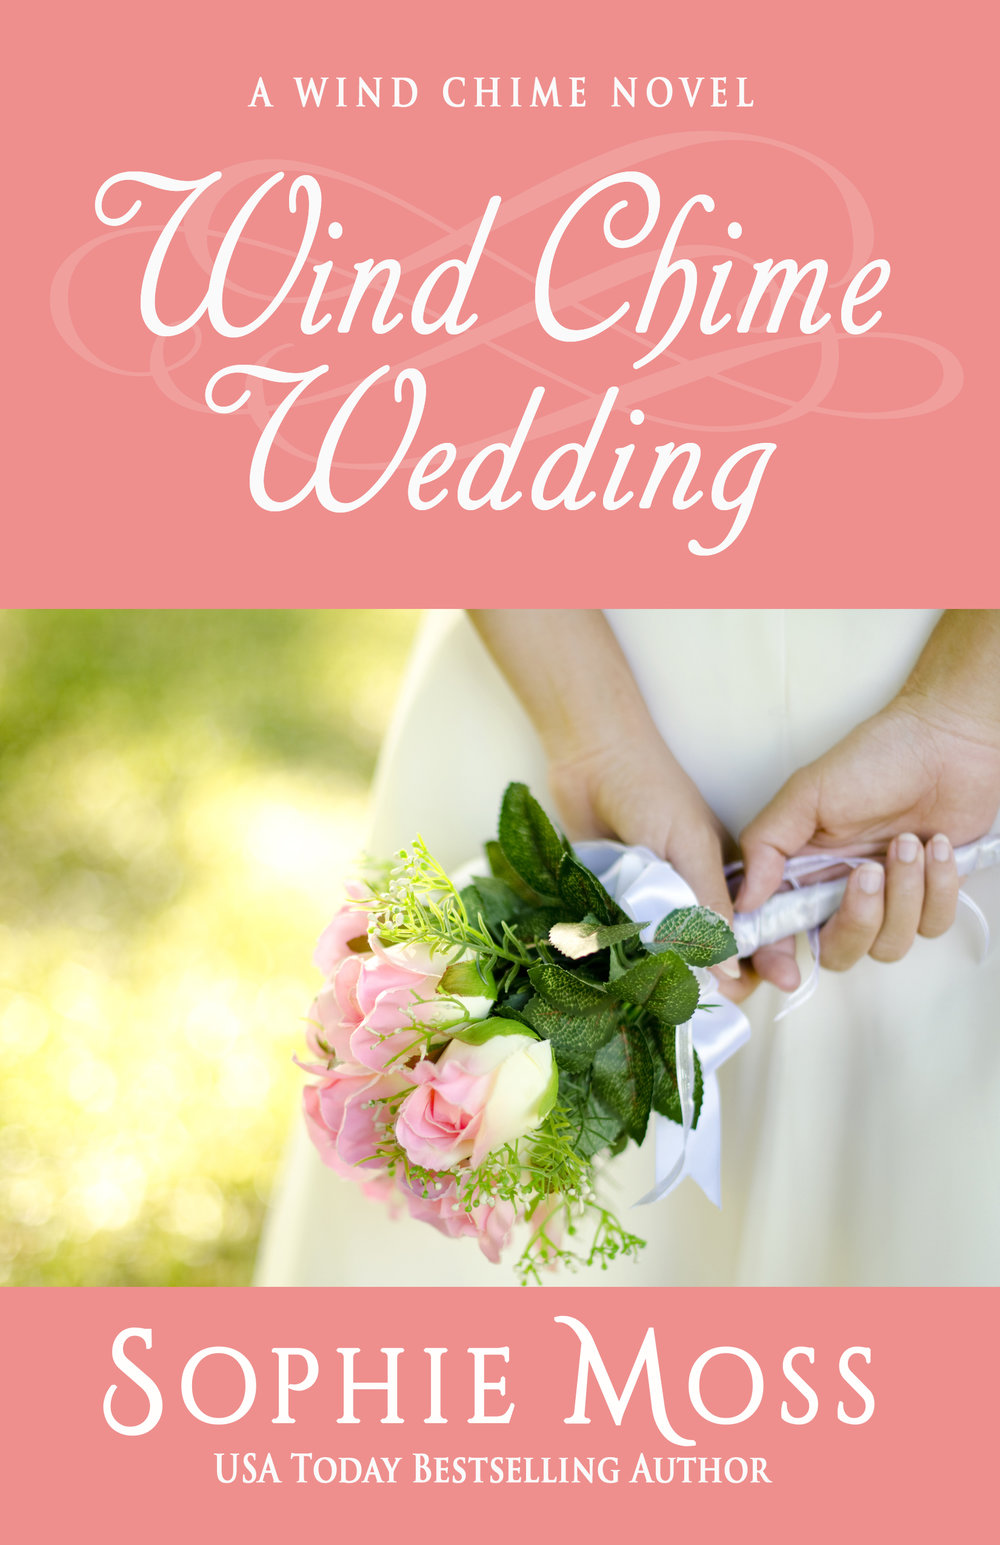 Wind Chime Wedding ebook cover Aug 14 2017 VELLUM.jpg